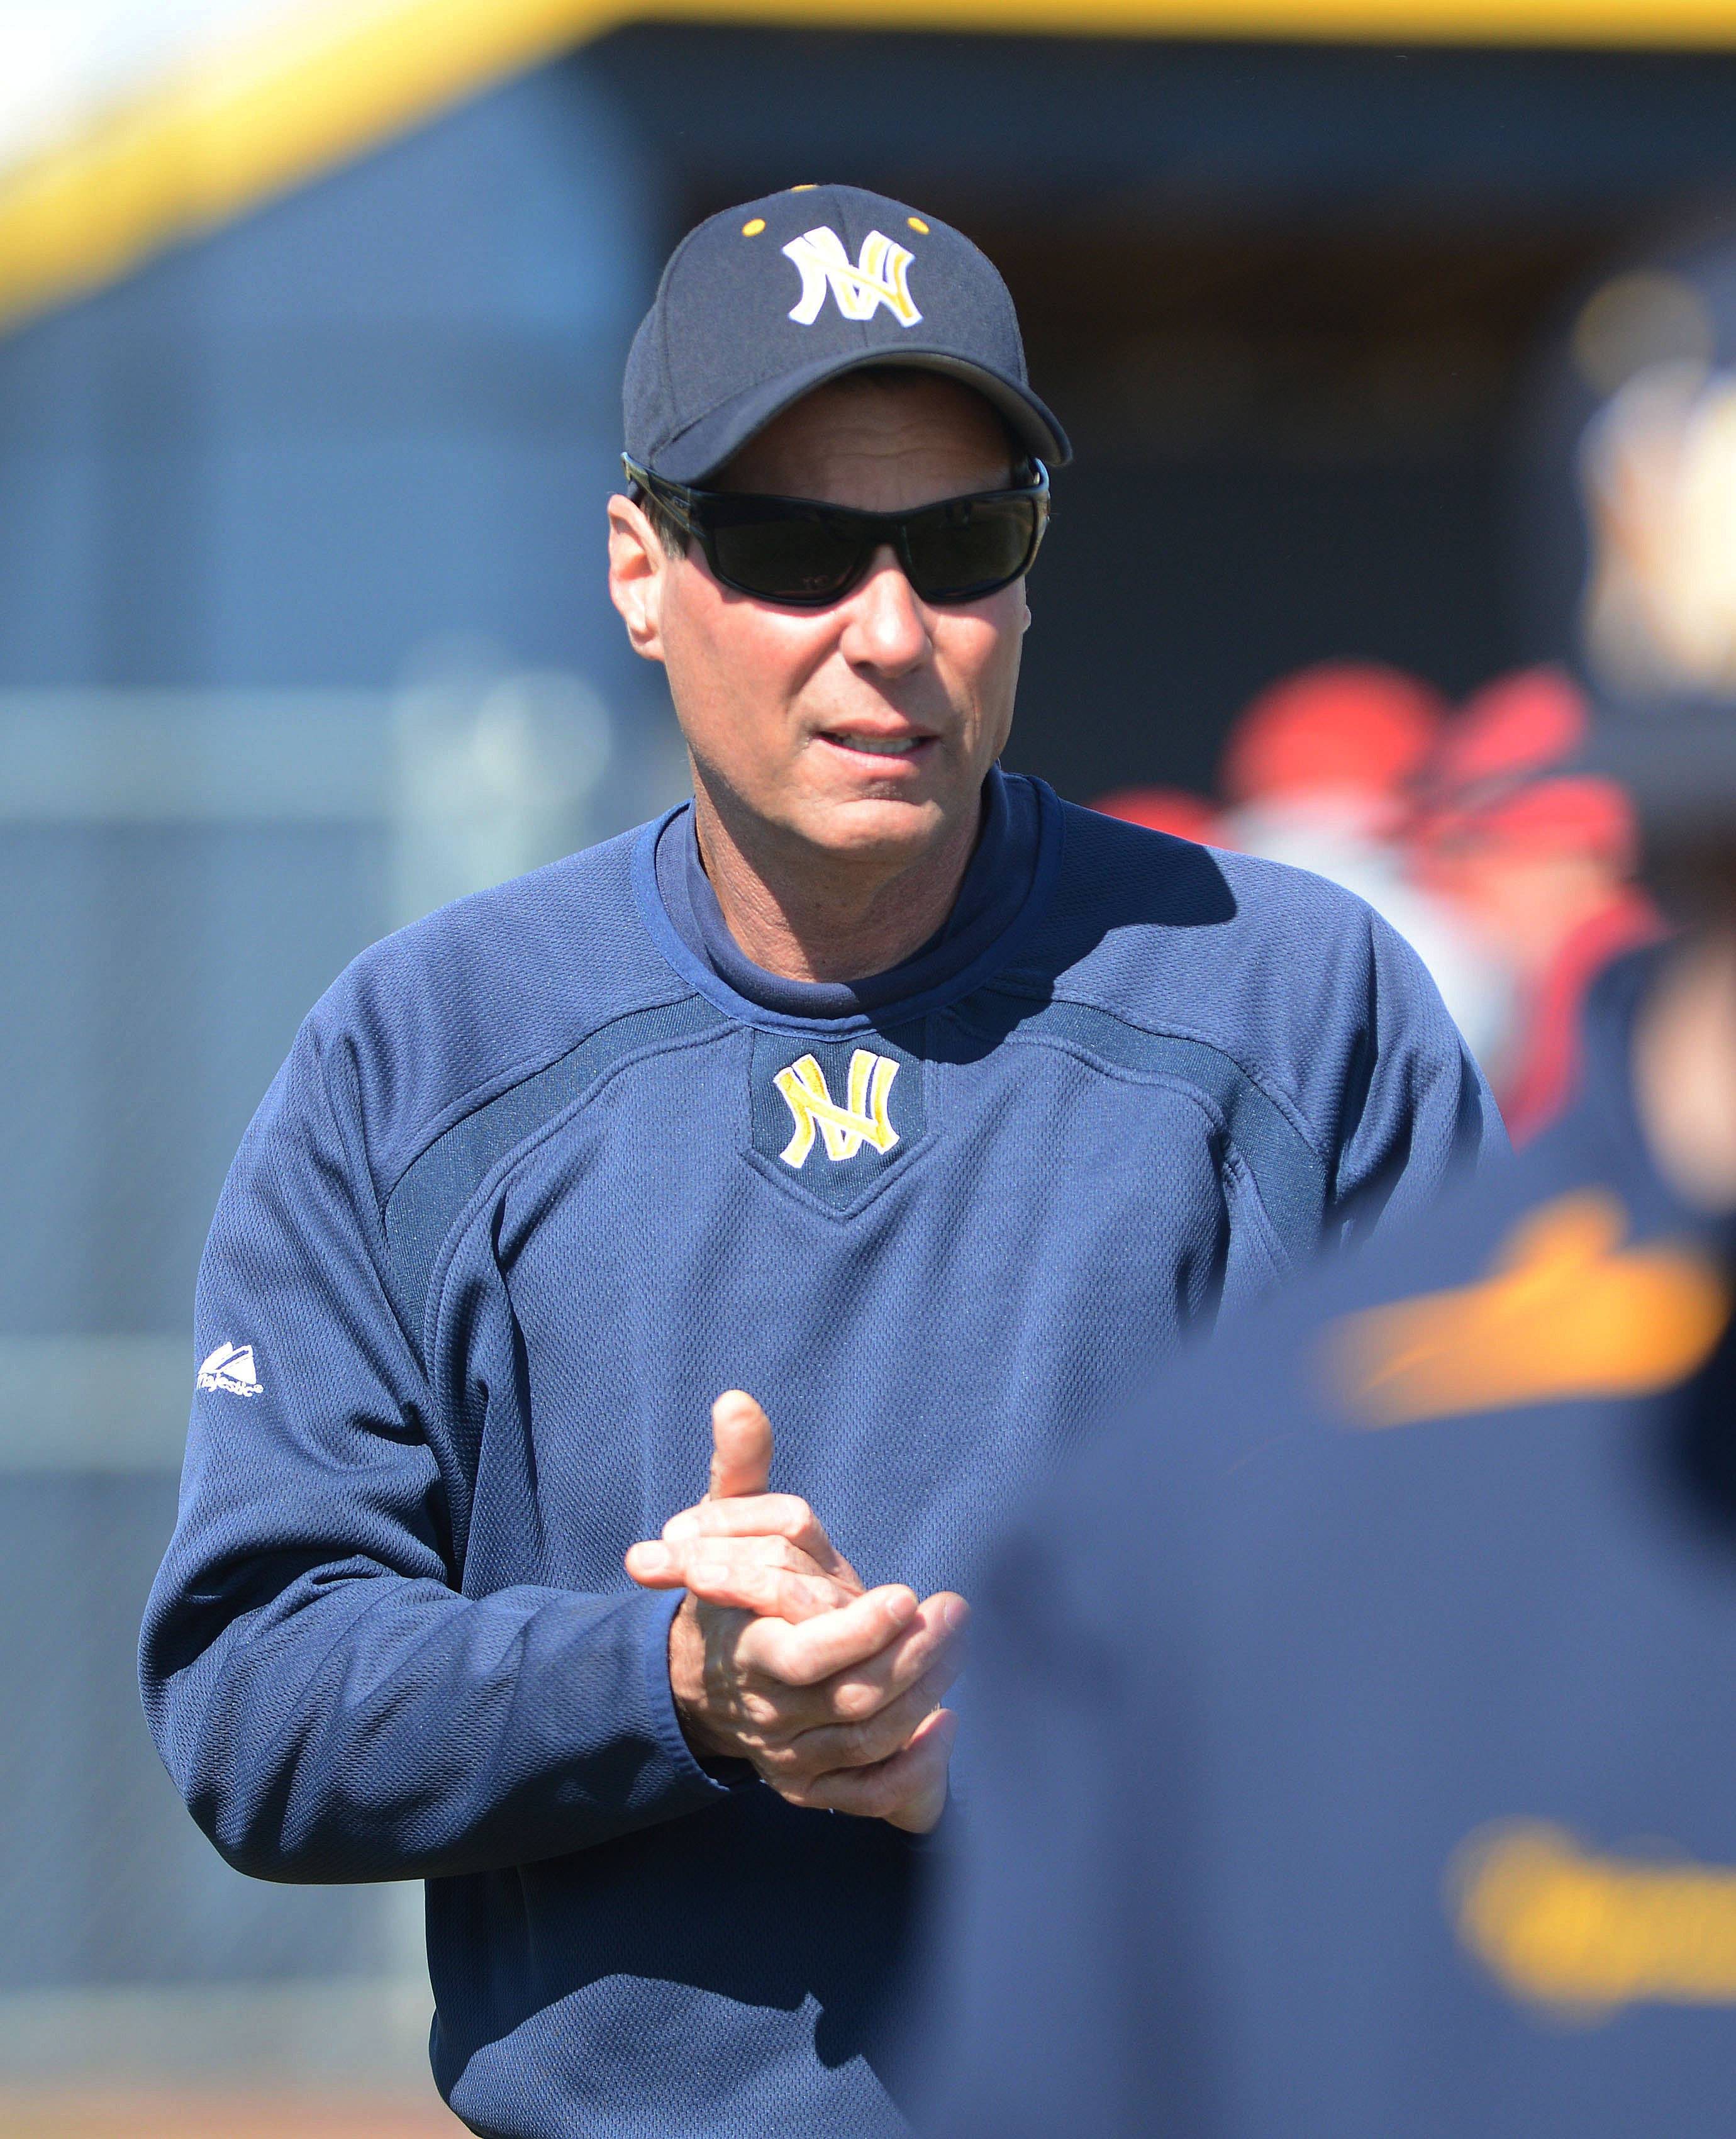 Neuqua Valley baseball coach Robin Renner will retire at the end of this school year.